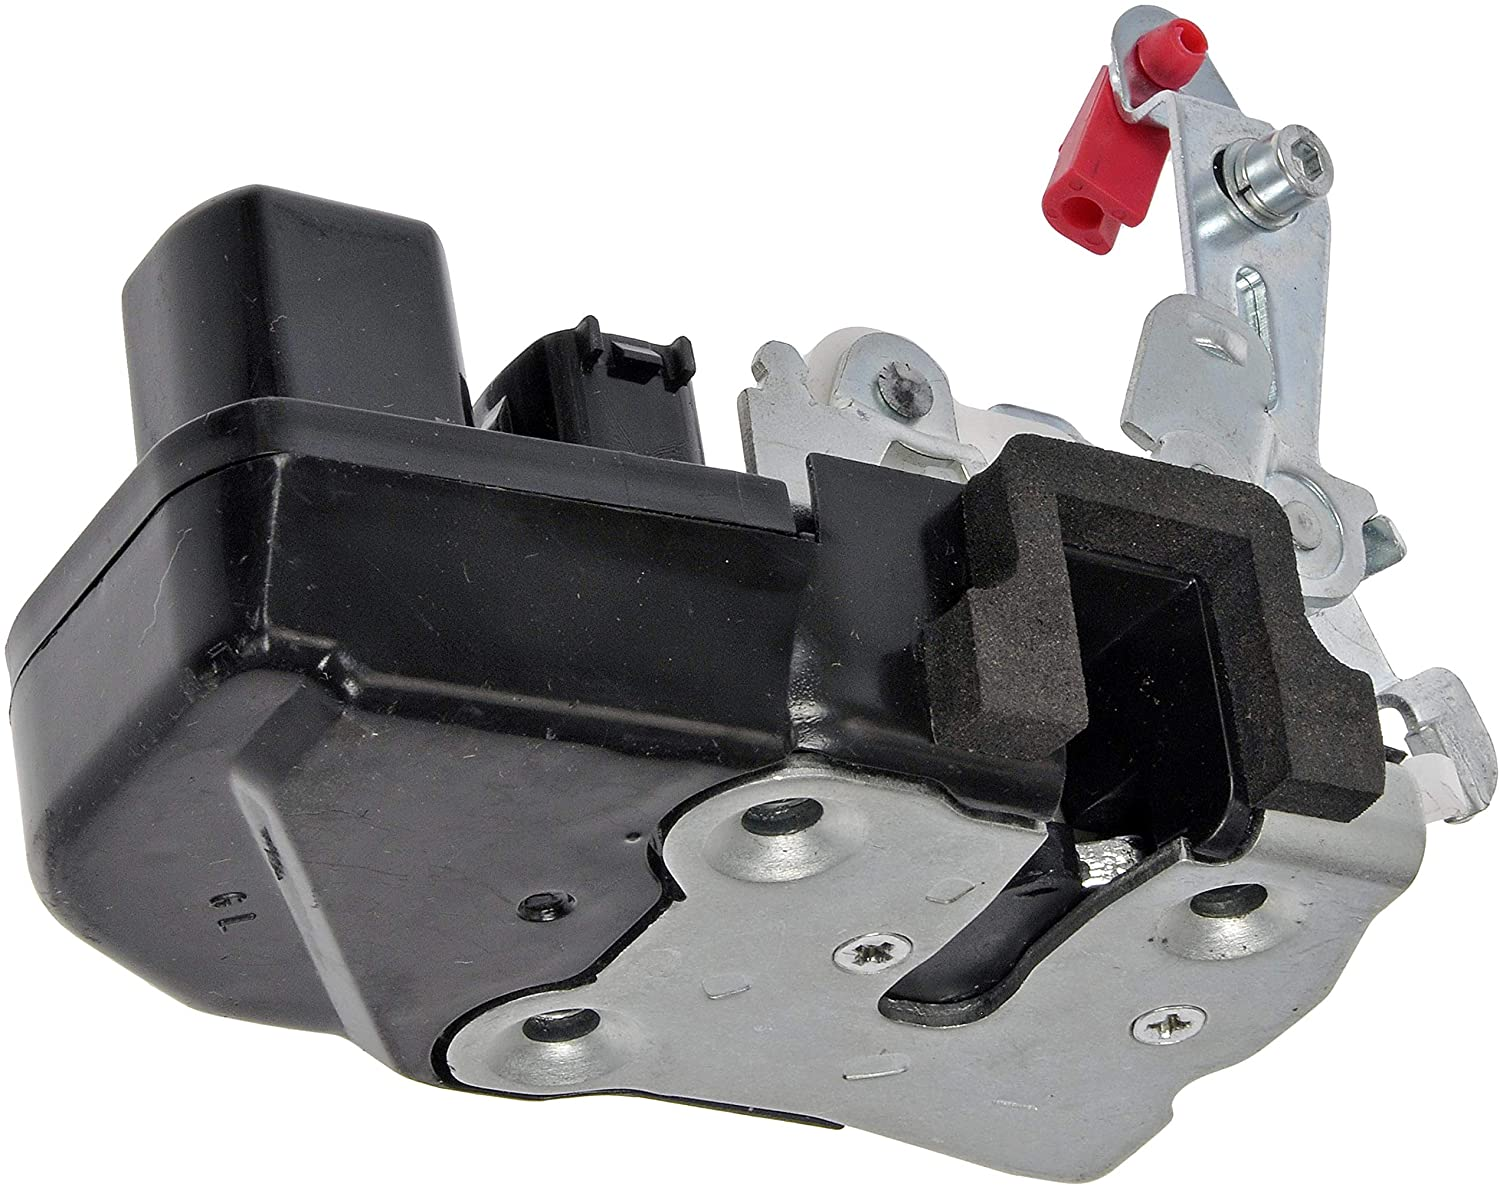 Replaces 55360357AA, 55360357AB, 55360357AC APDTY 137048 Rear Liftgate Door Lock Actuator Motor Fits Jeep Commander Grand Cherokee Liberty